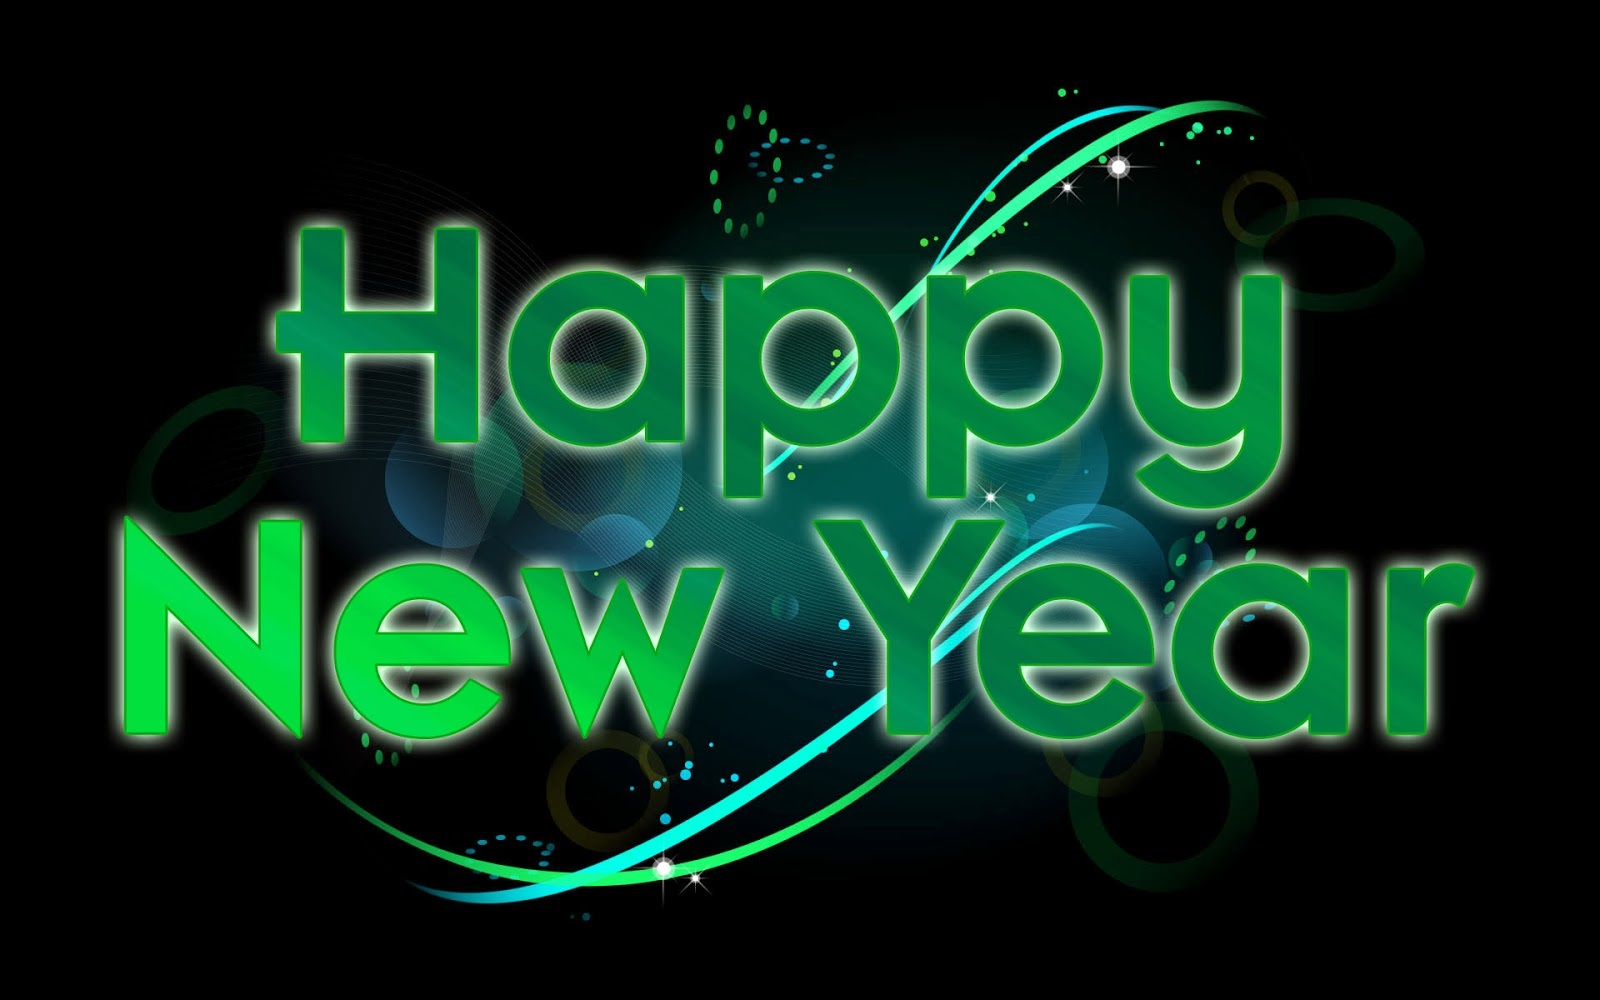 Happy New Year Wallpapers 2017 HD Images - Free Download